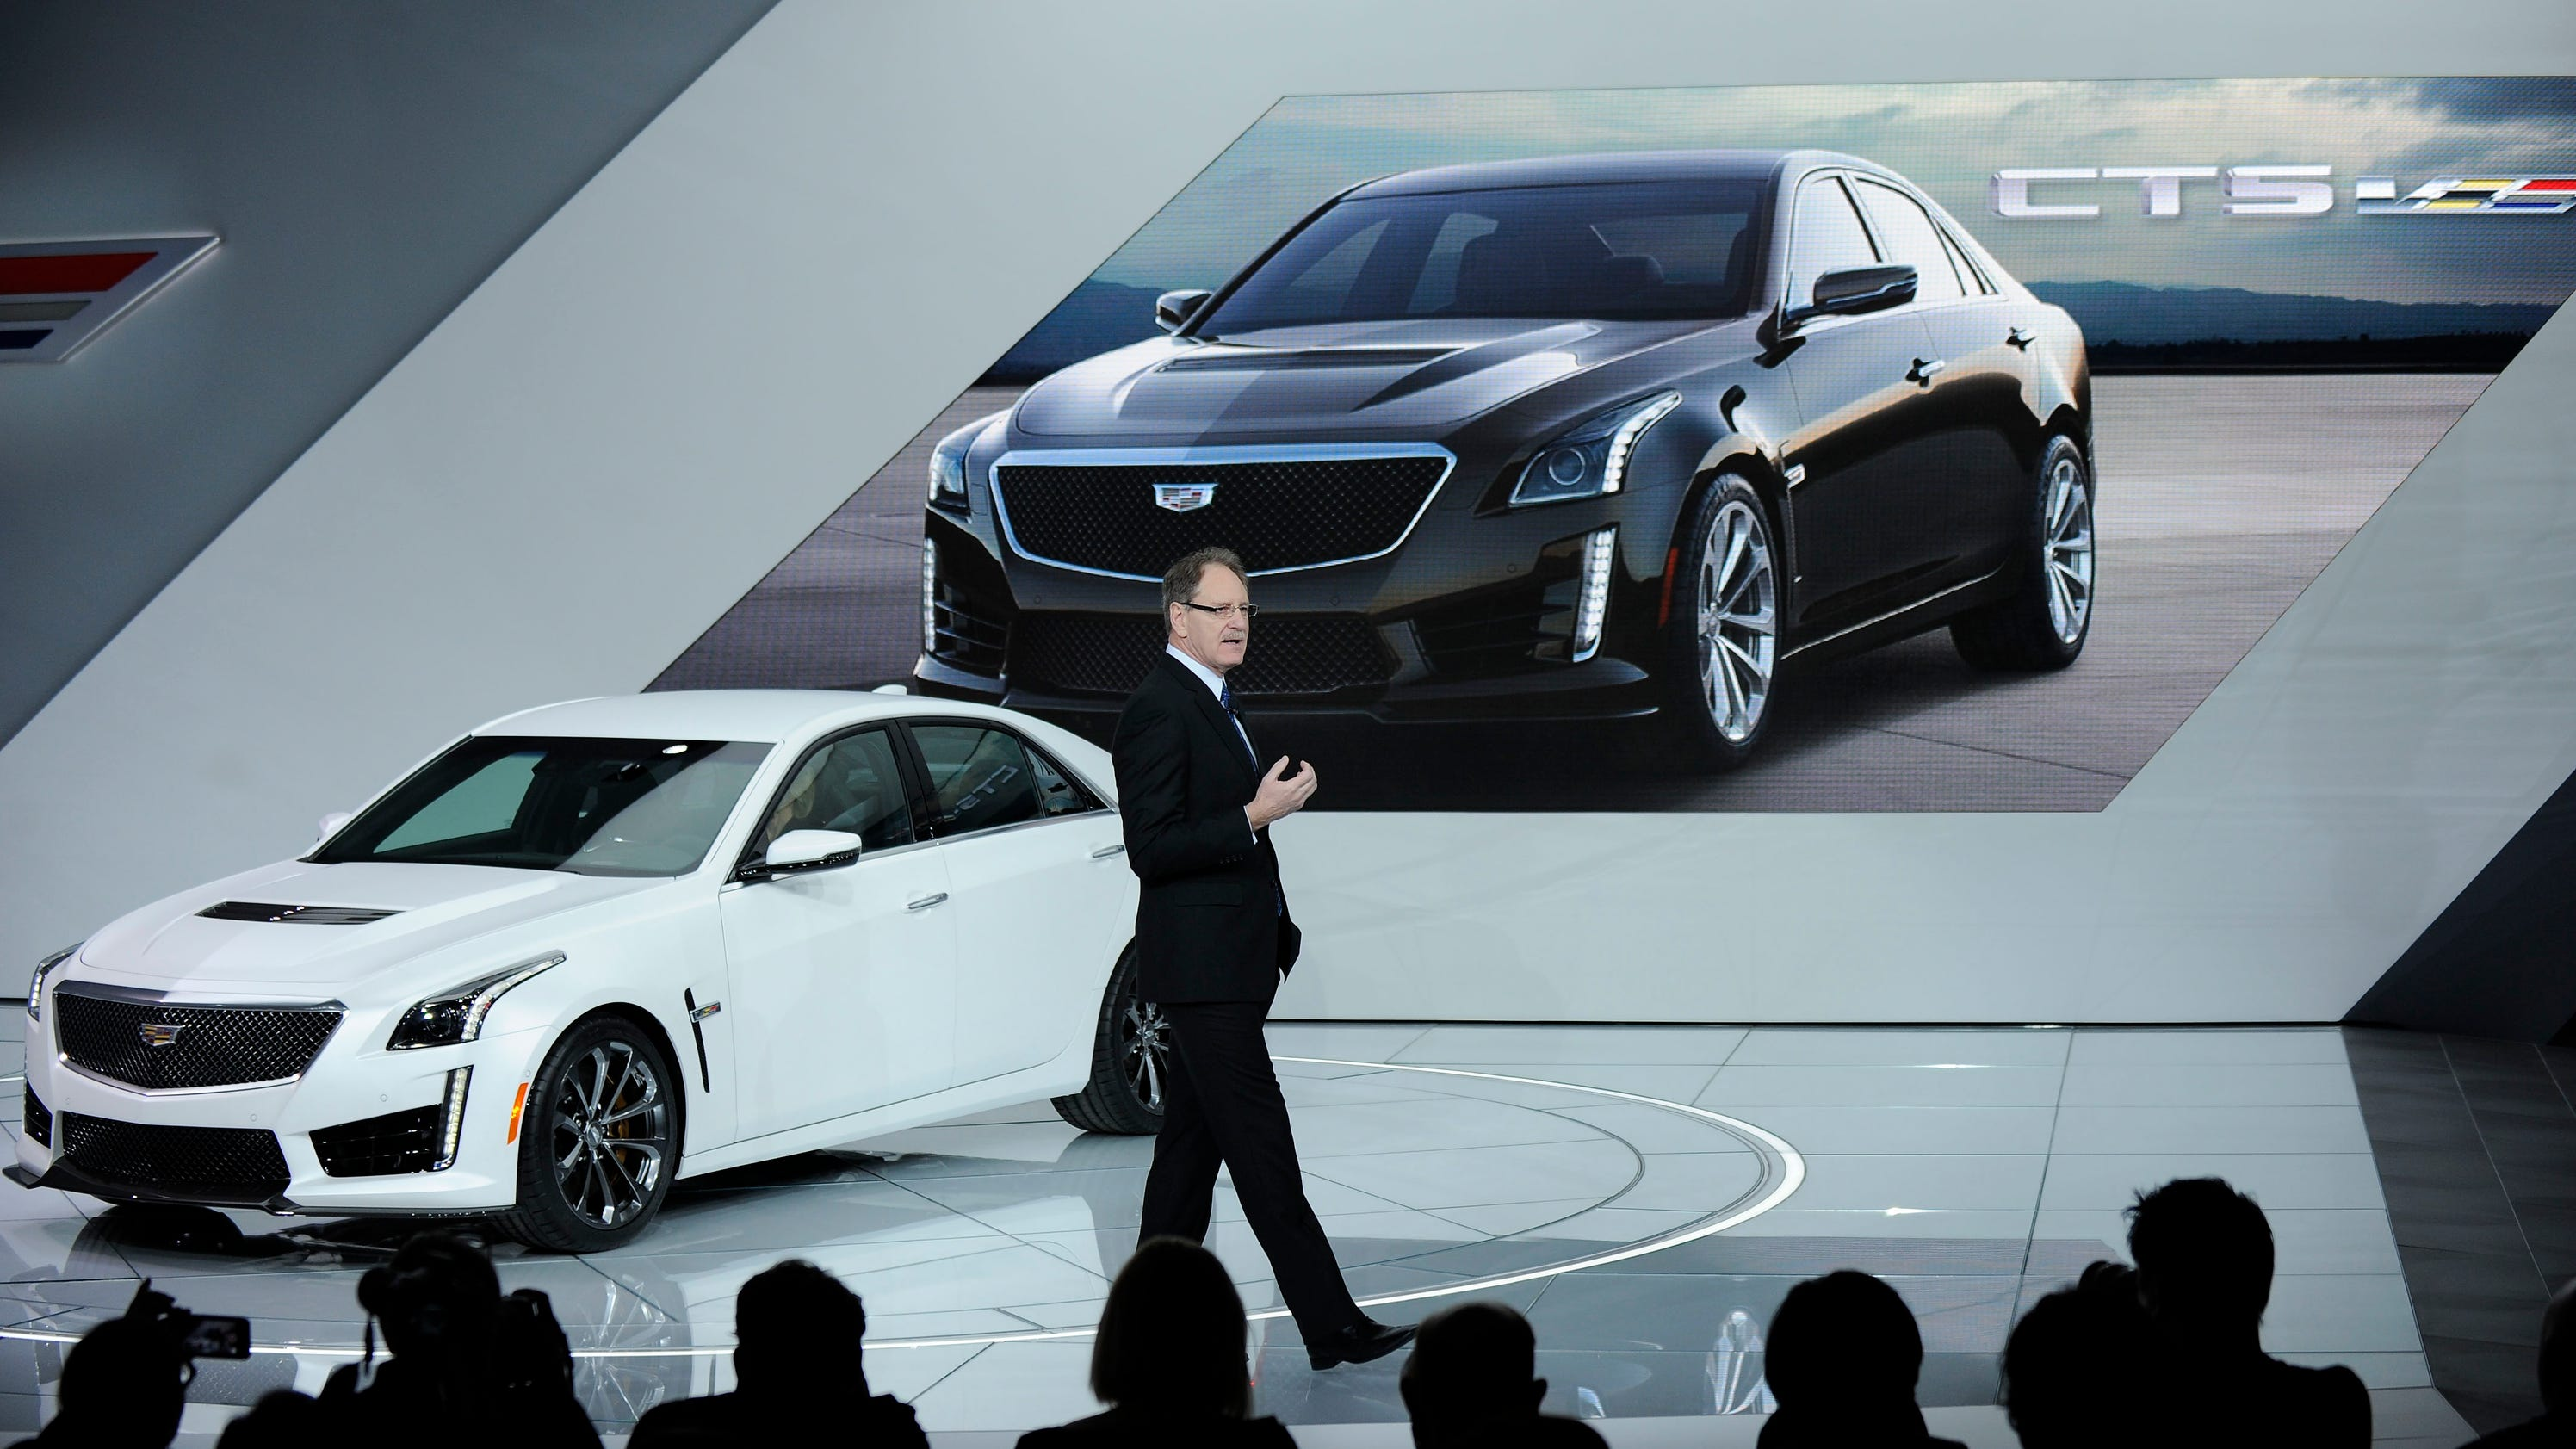 Cadillac to spend $12 billion on 8 new vehicles by 2020